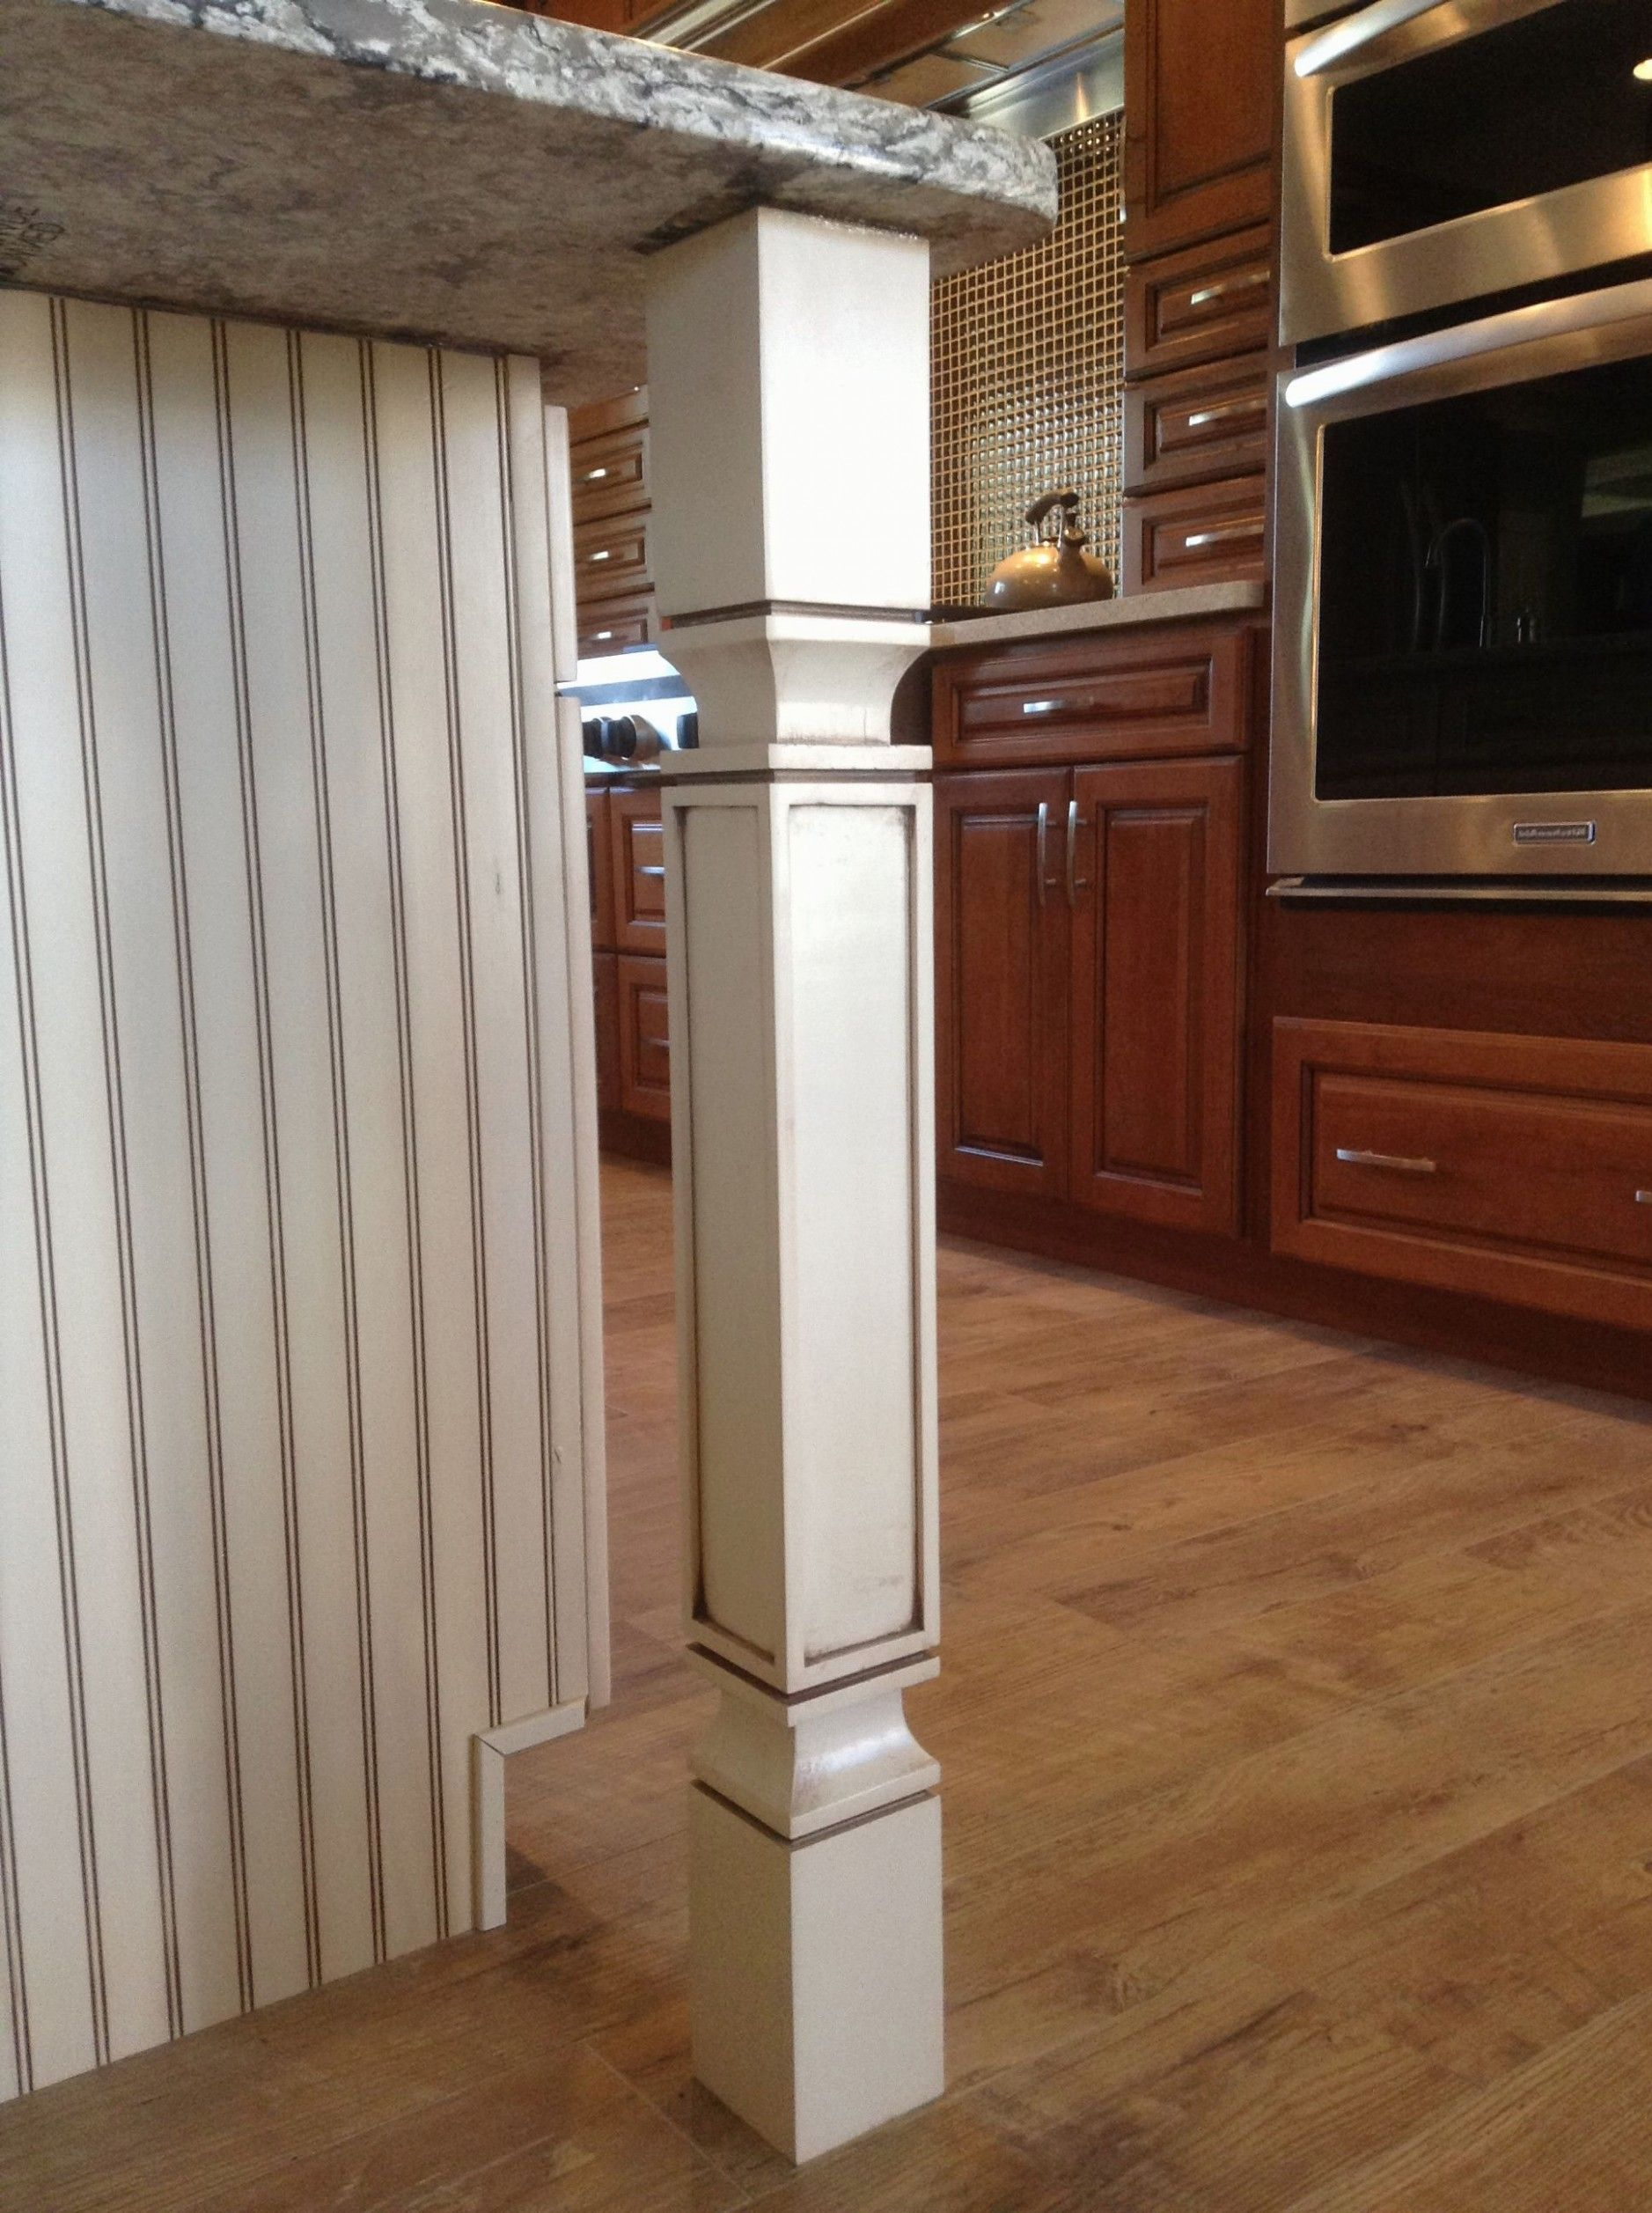 Seven Great Kitchen Island Legs Home Depot Ideas That You Can Share With Your Friends In 2020 Craftsman Style Kitchen Home Depot Kitchen Building A Kitchen,Hd Quality Beautiful Flower Images Download